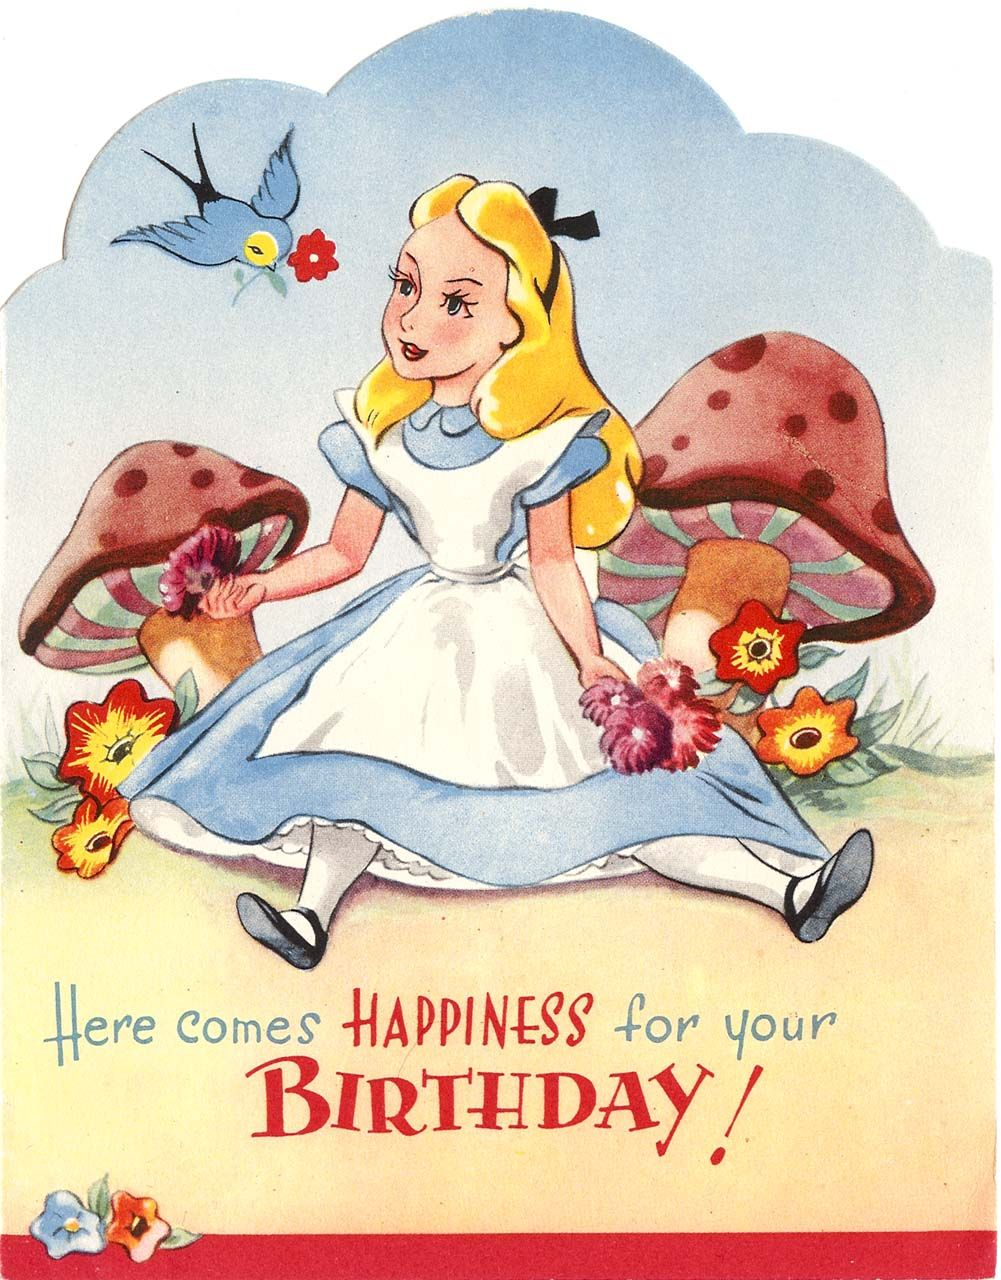 Vintage disney alice in wonderland english birthday card by vintage alice in wonderland birthday cards a very merry unbirthday to you kristyandbryce Choice Image